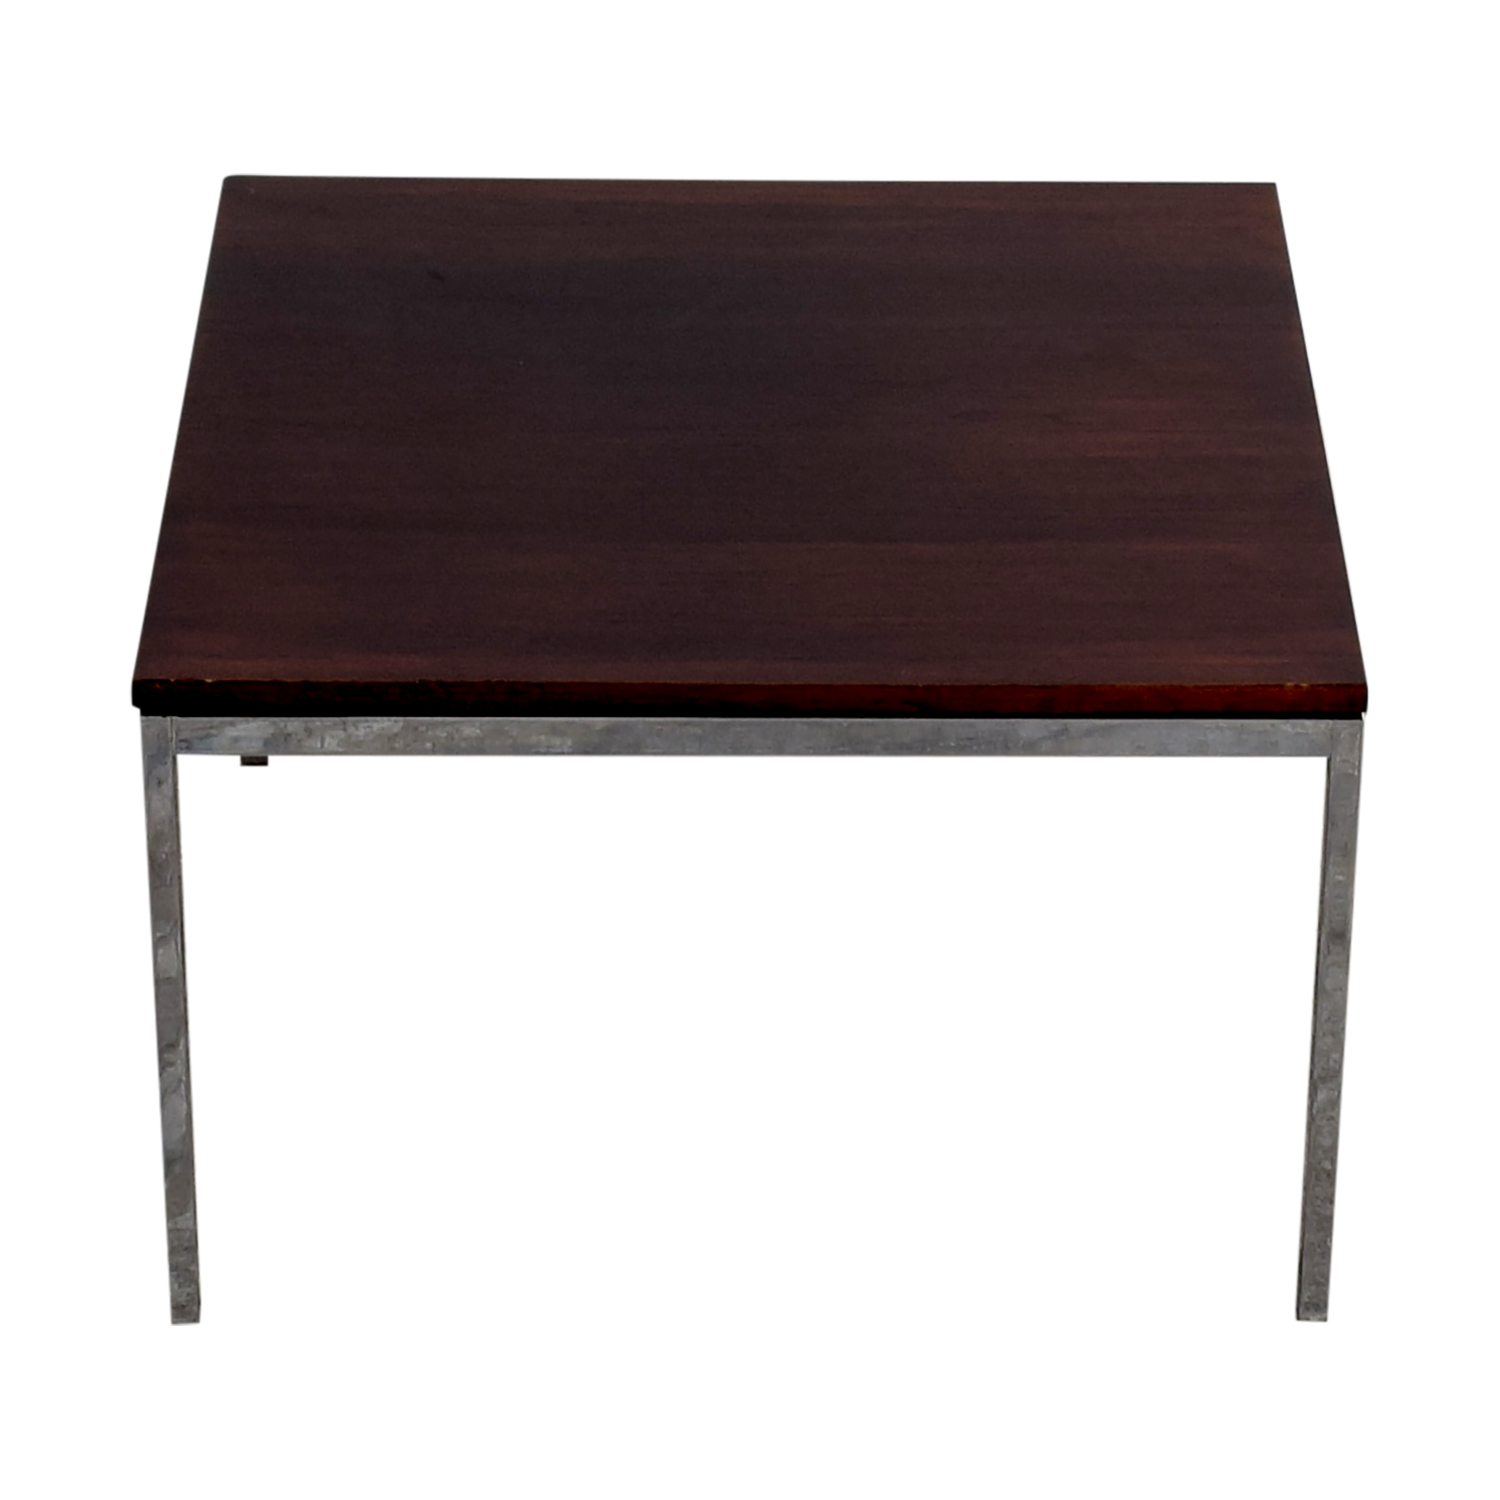 ... Florence Knoll Florence Knoll Rosewood And Chrome Coffee Table Price ...